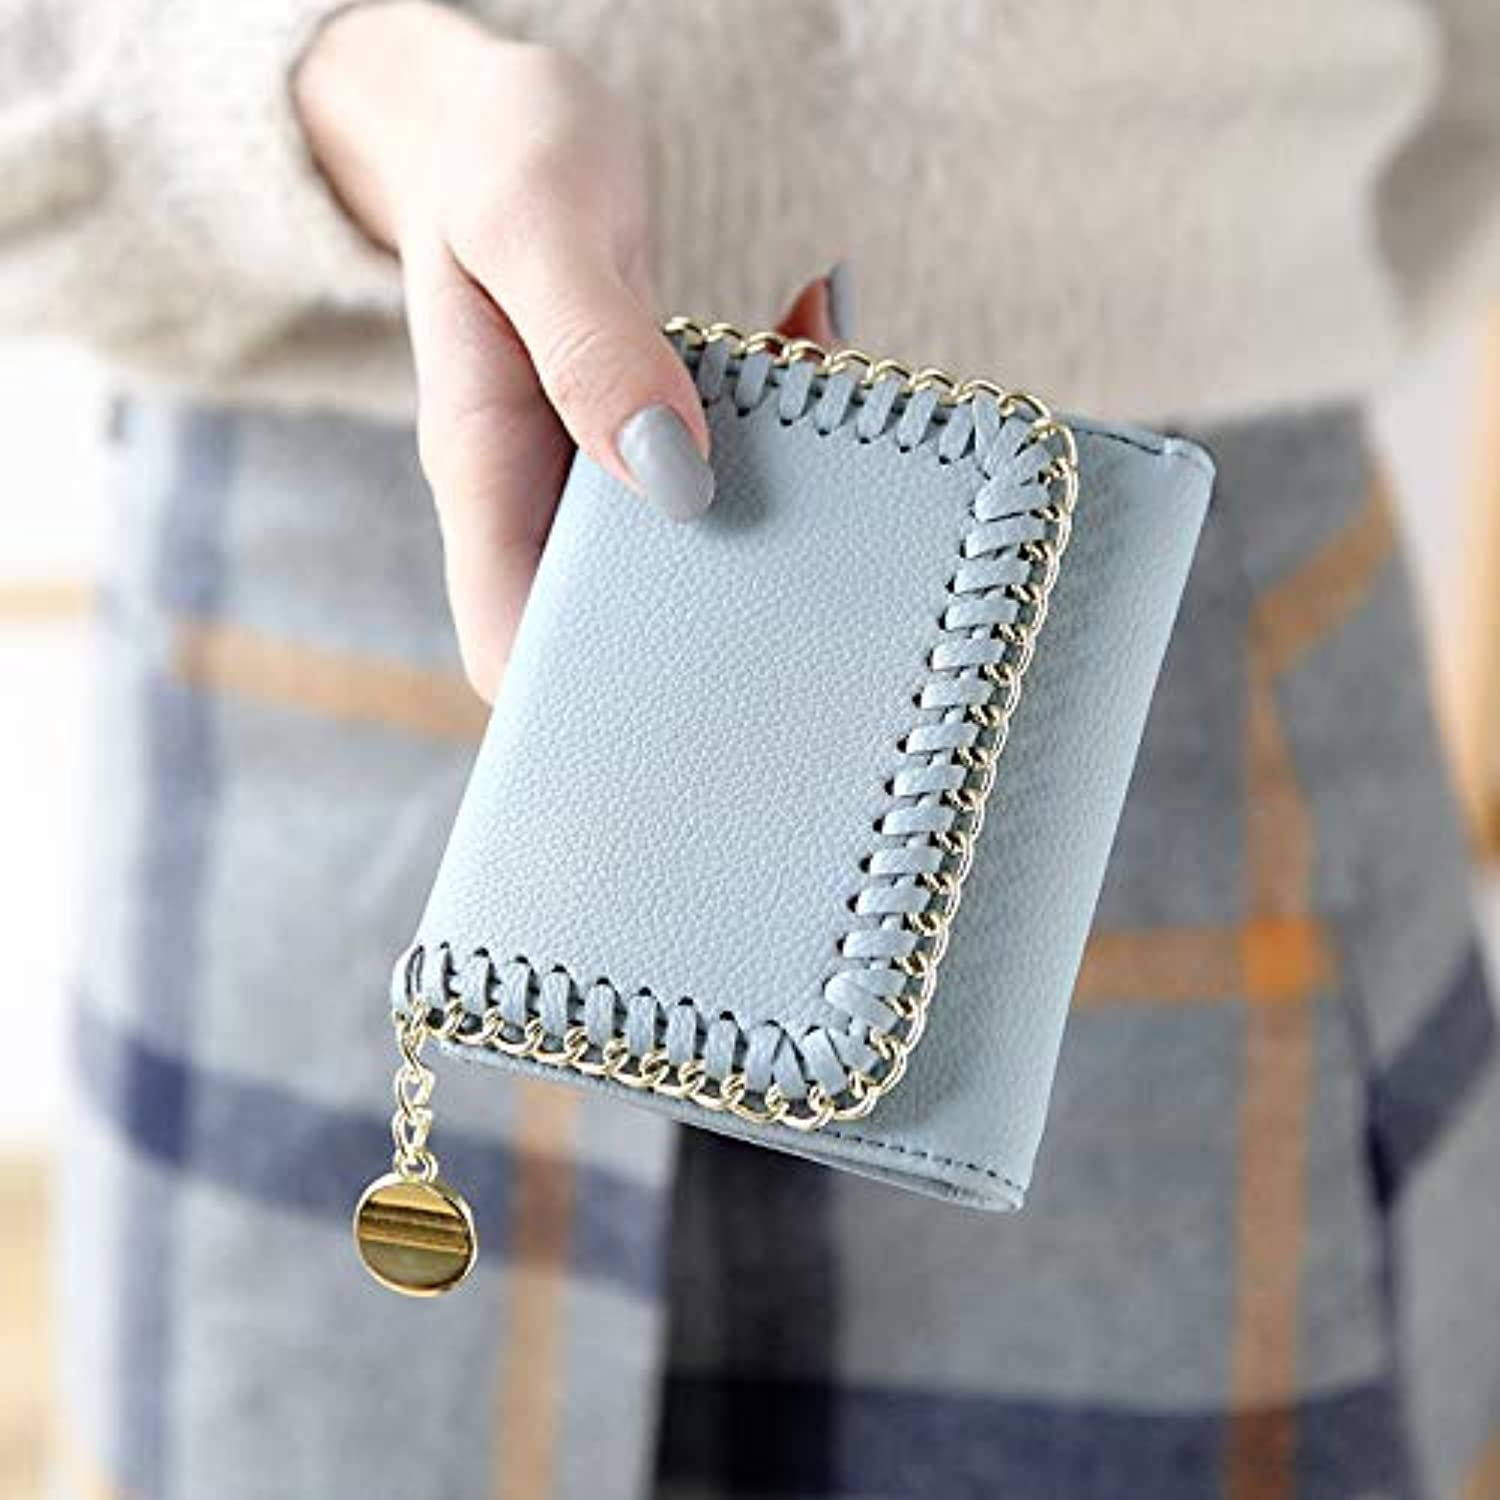 Women's Wallet Women's Short Paragraph Japanese and Korean Fashion Buckle MultiFunction Wallet Students LargeCapacity Woven Wallet (color   bluee) Ladies Purses (color   bluee)